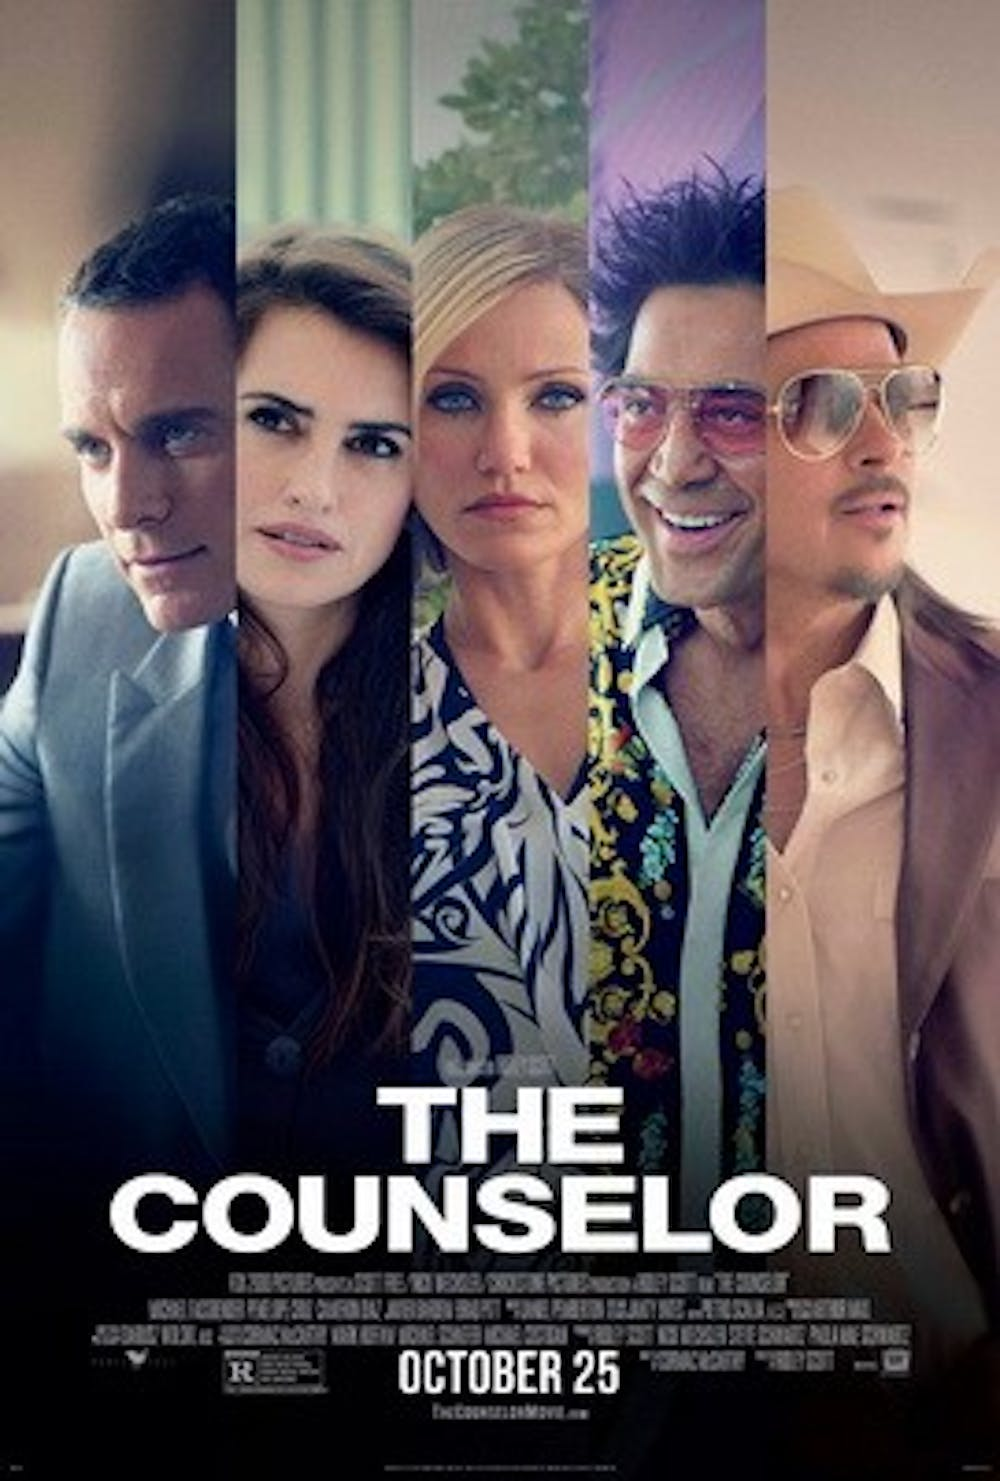 The renegade style of 'The Counselor' shines